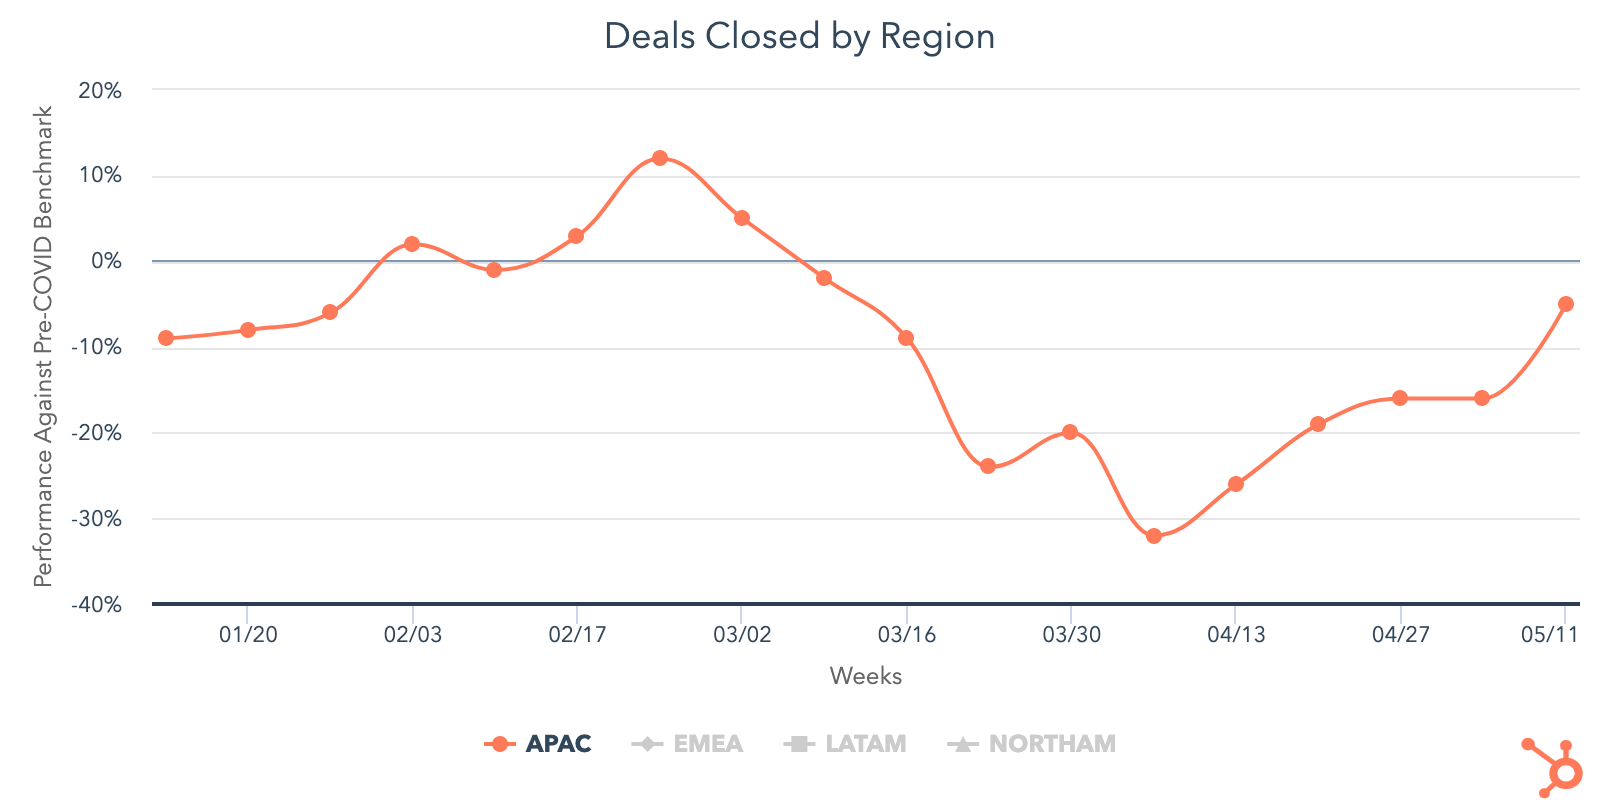 deals closed by region